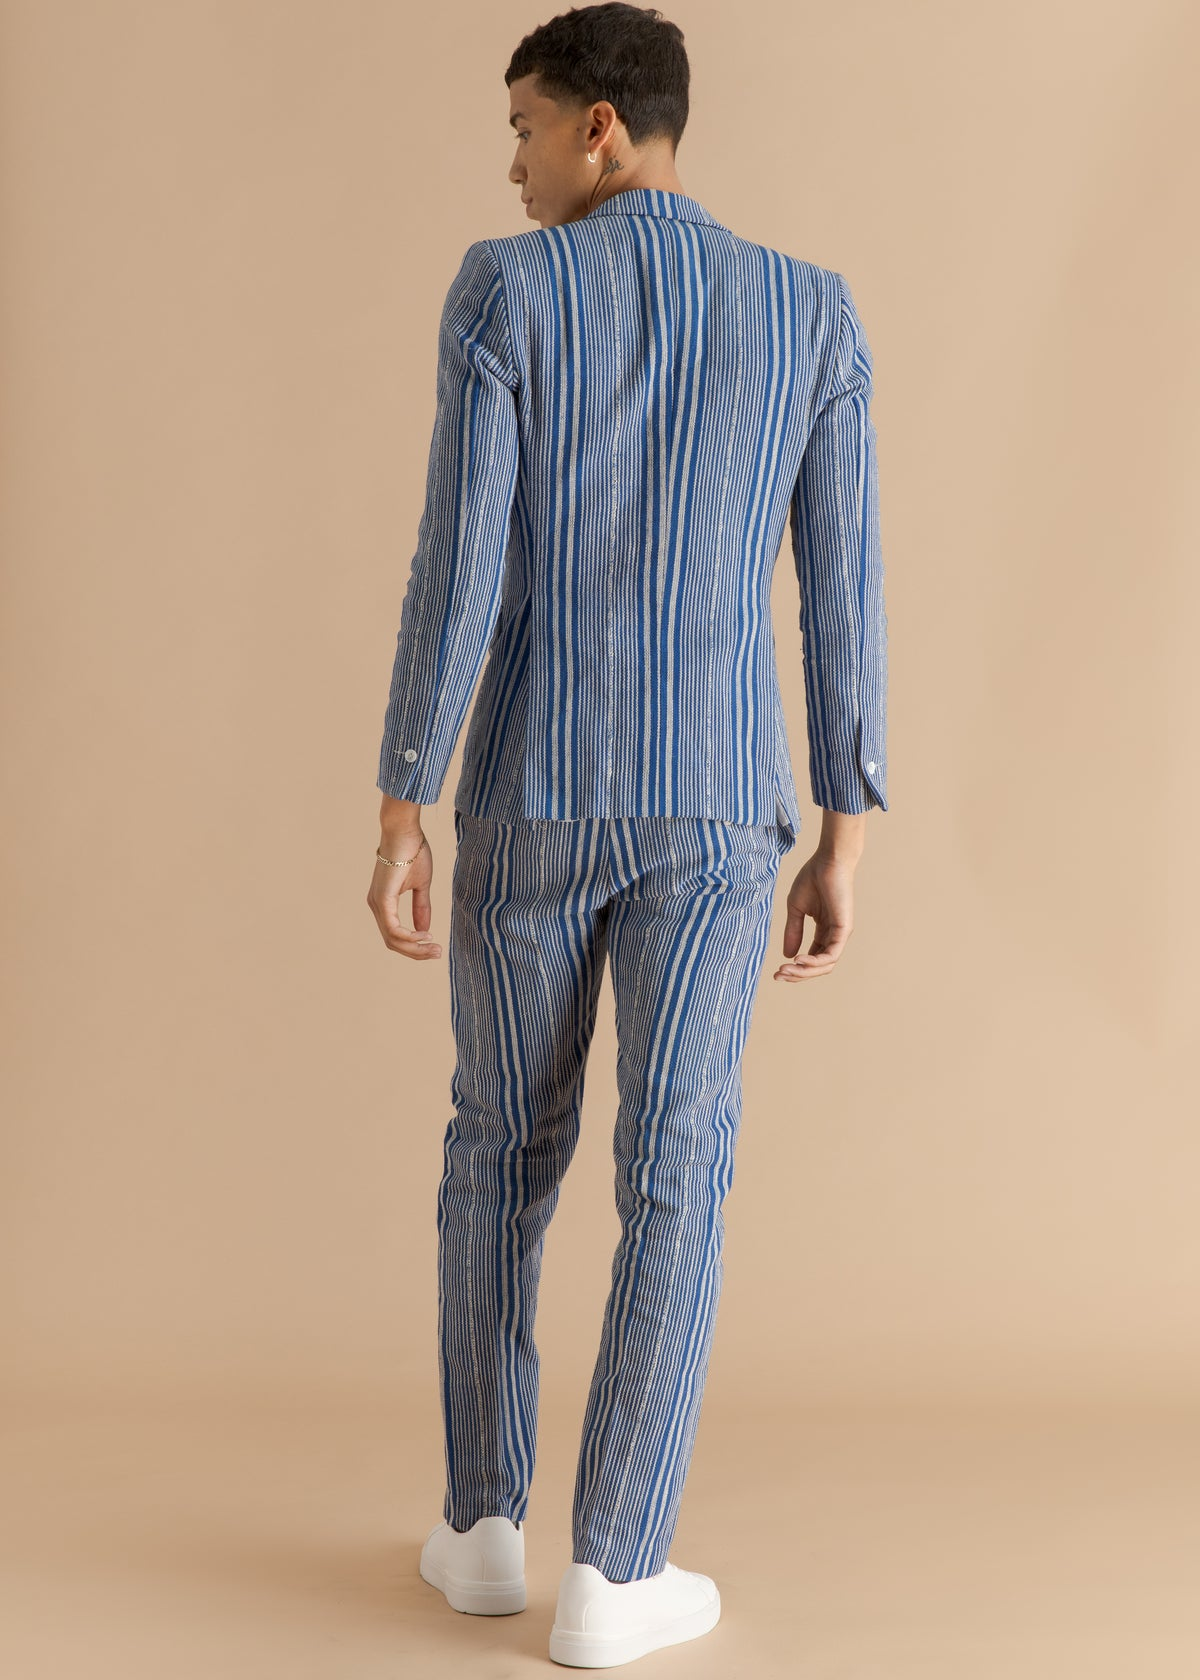 Kente Gentlemen blue striped suit